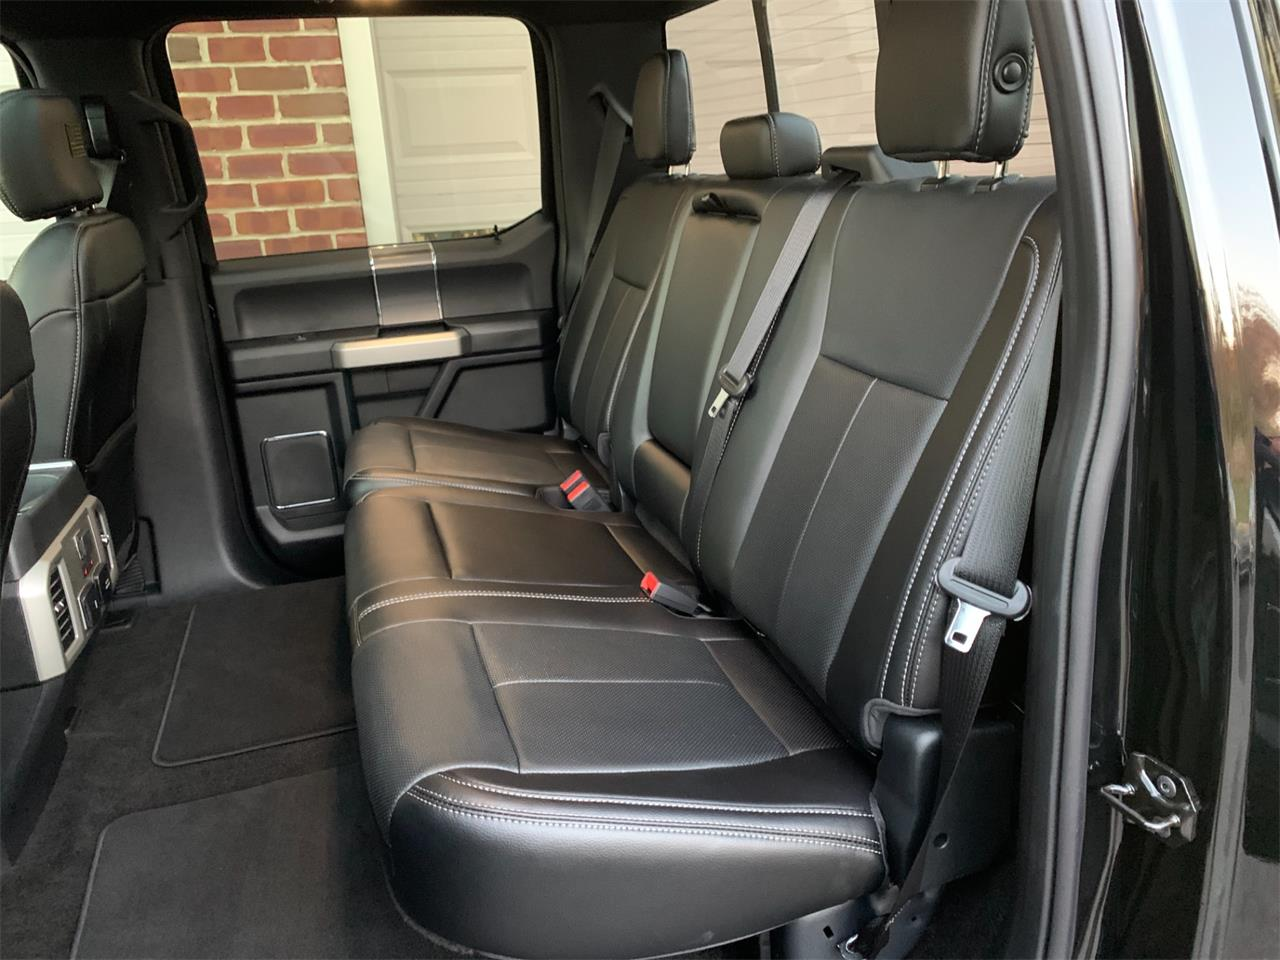 2018 Ford F150 (CC-1301907) for sale in Edgewater Park, New Jersey